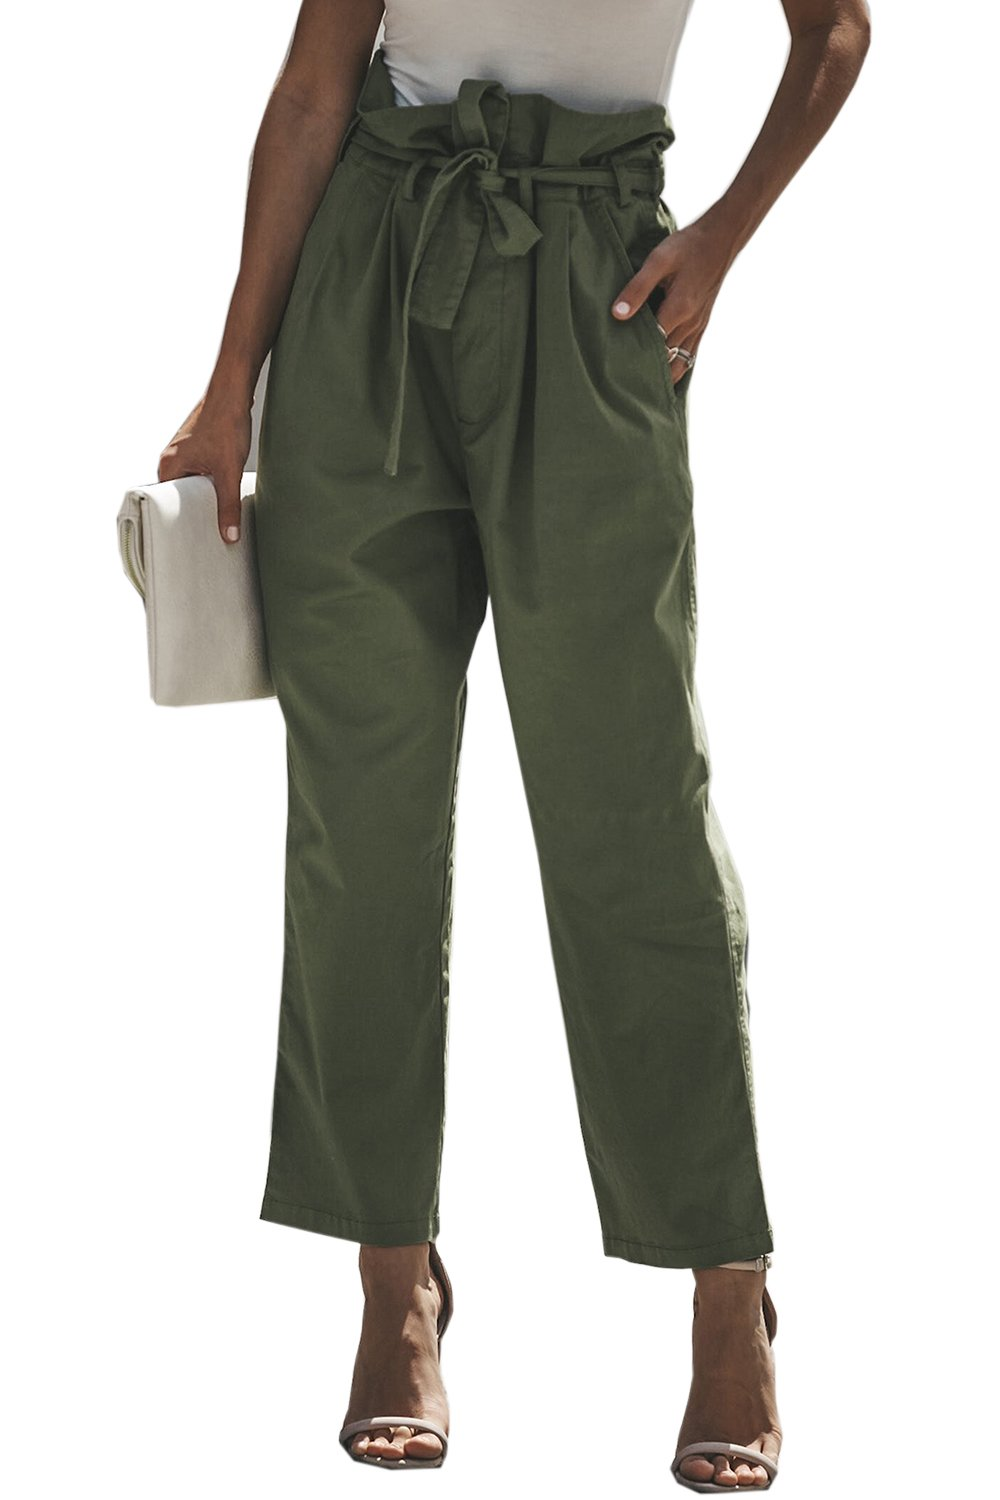 Meilidress Womens Slim Work Pants High Waisted Tie Front Straight LegTrousers with Pockets